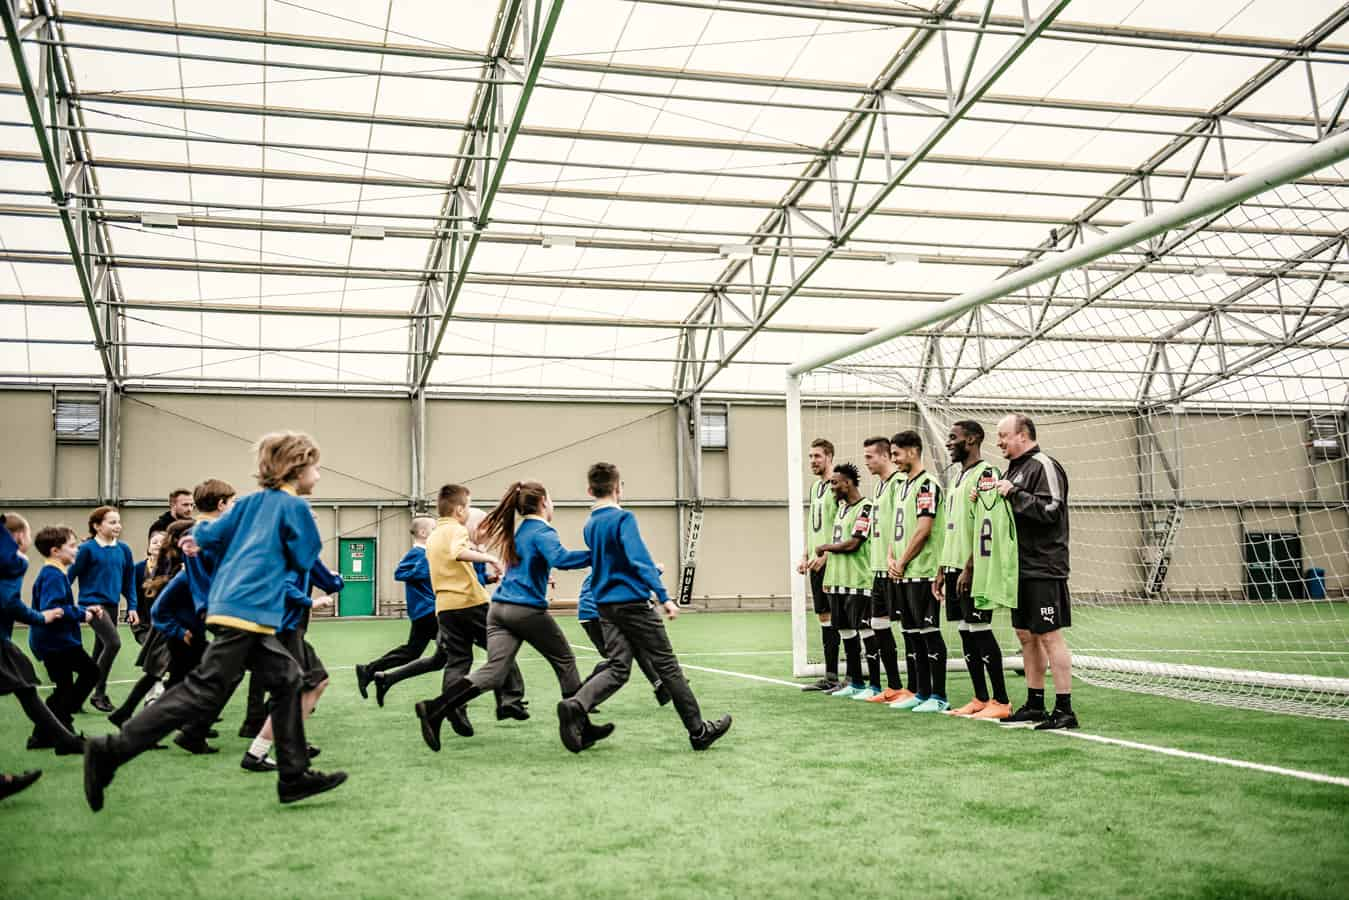 Primary school pupils meet Newcastle United FC footballers as part of the Premier League Primary Stars Best Lesson Ever